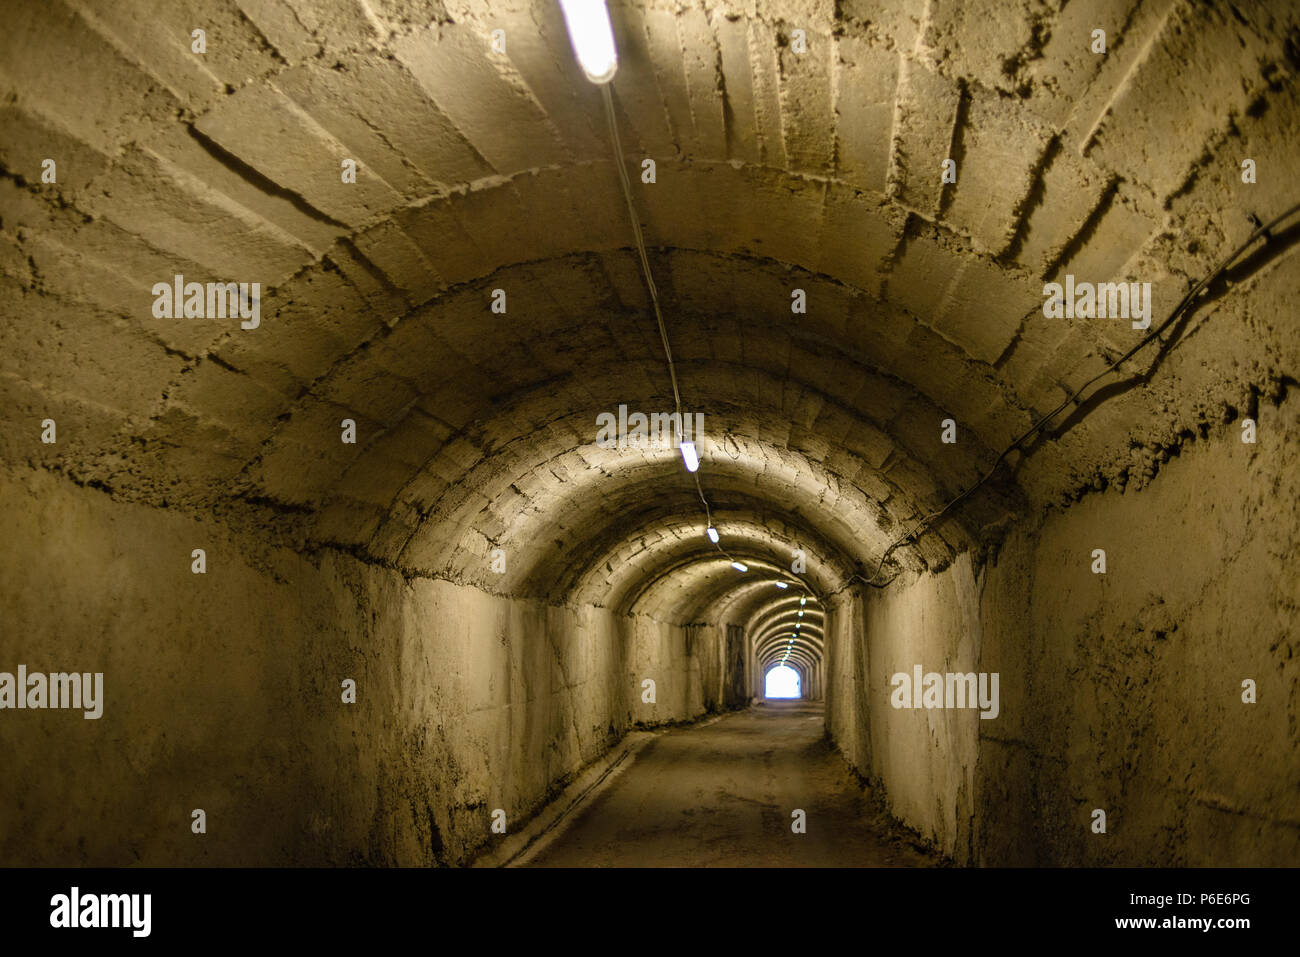 Tunnel to the antinuclear bunker in Tirana, Albania - Stock Image